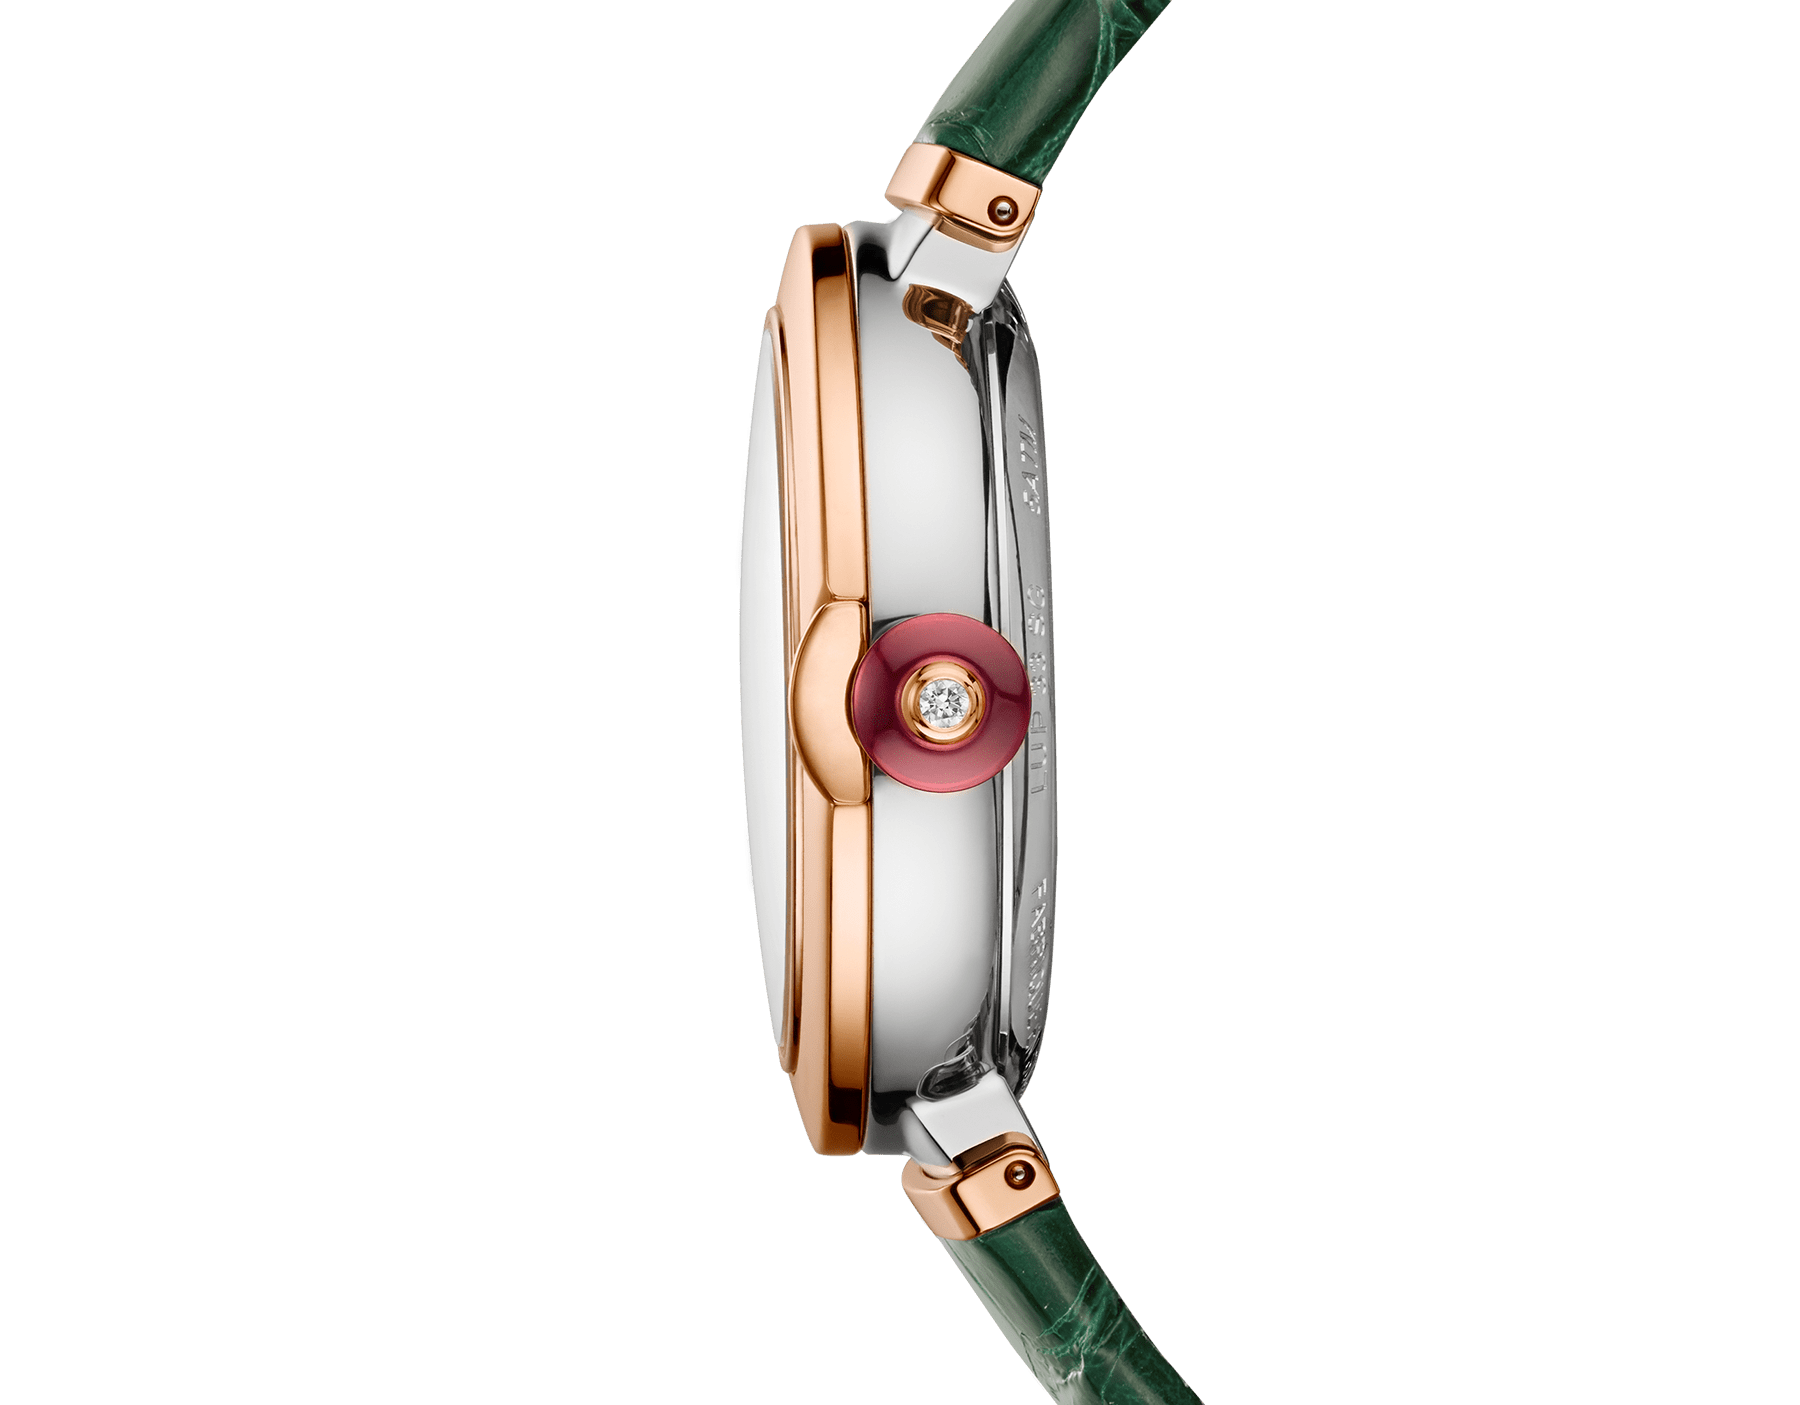 LVCEA watch with 18 kt rose gold and stainless steel case, white mother-of-pearl dial set with diamond indexes, date aperture and green alligator bracelet. 102640 image 3